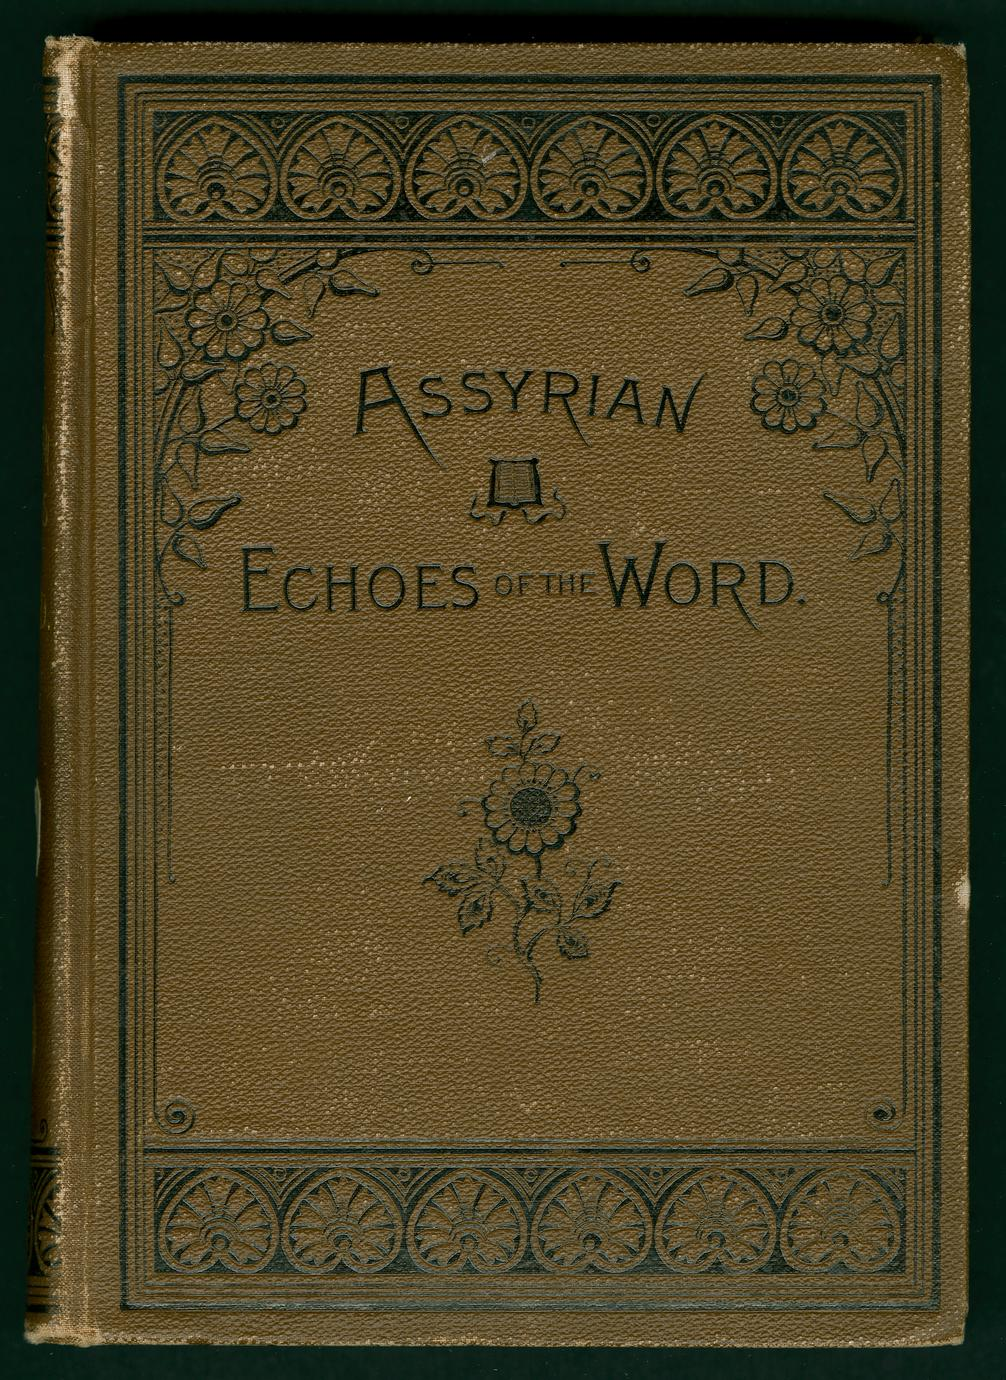 Assyrian echoes of the Word (1 of 2)